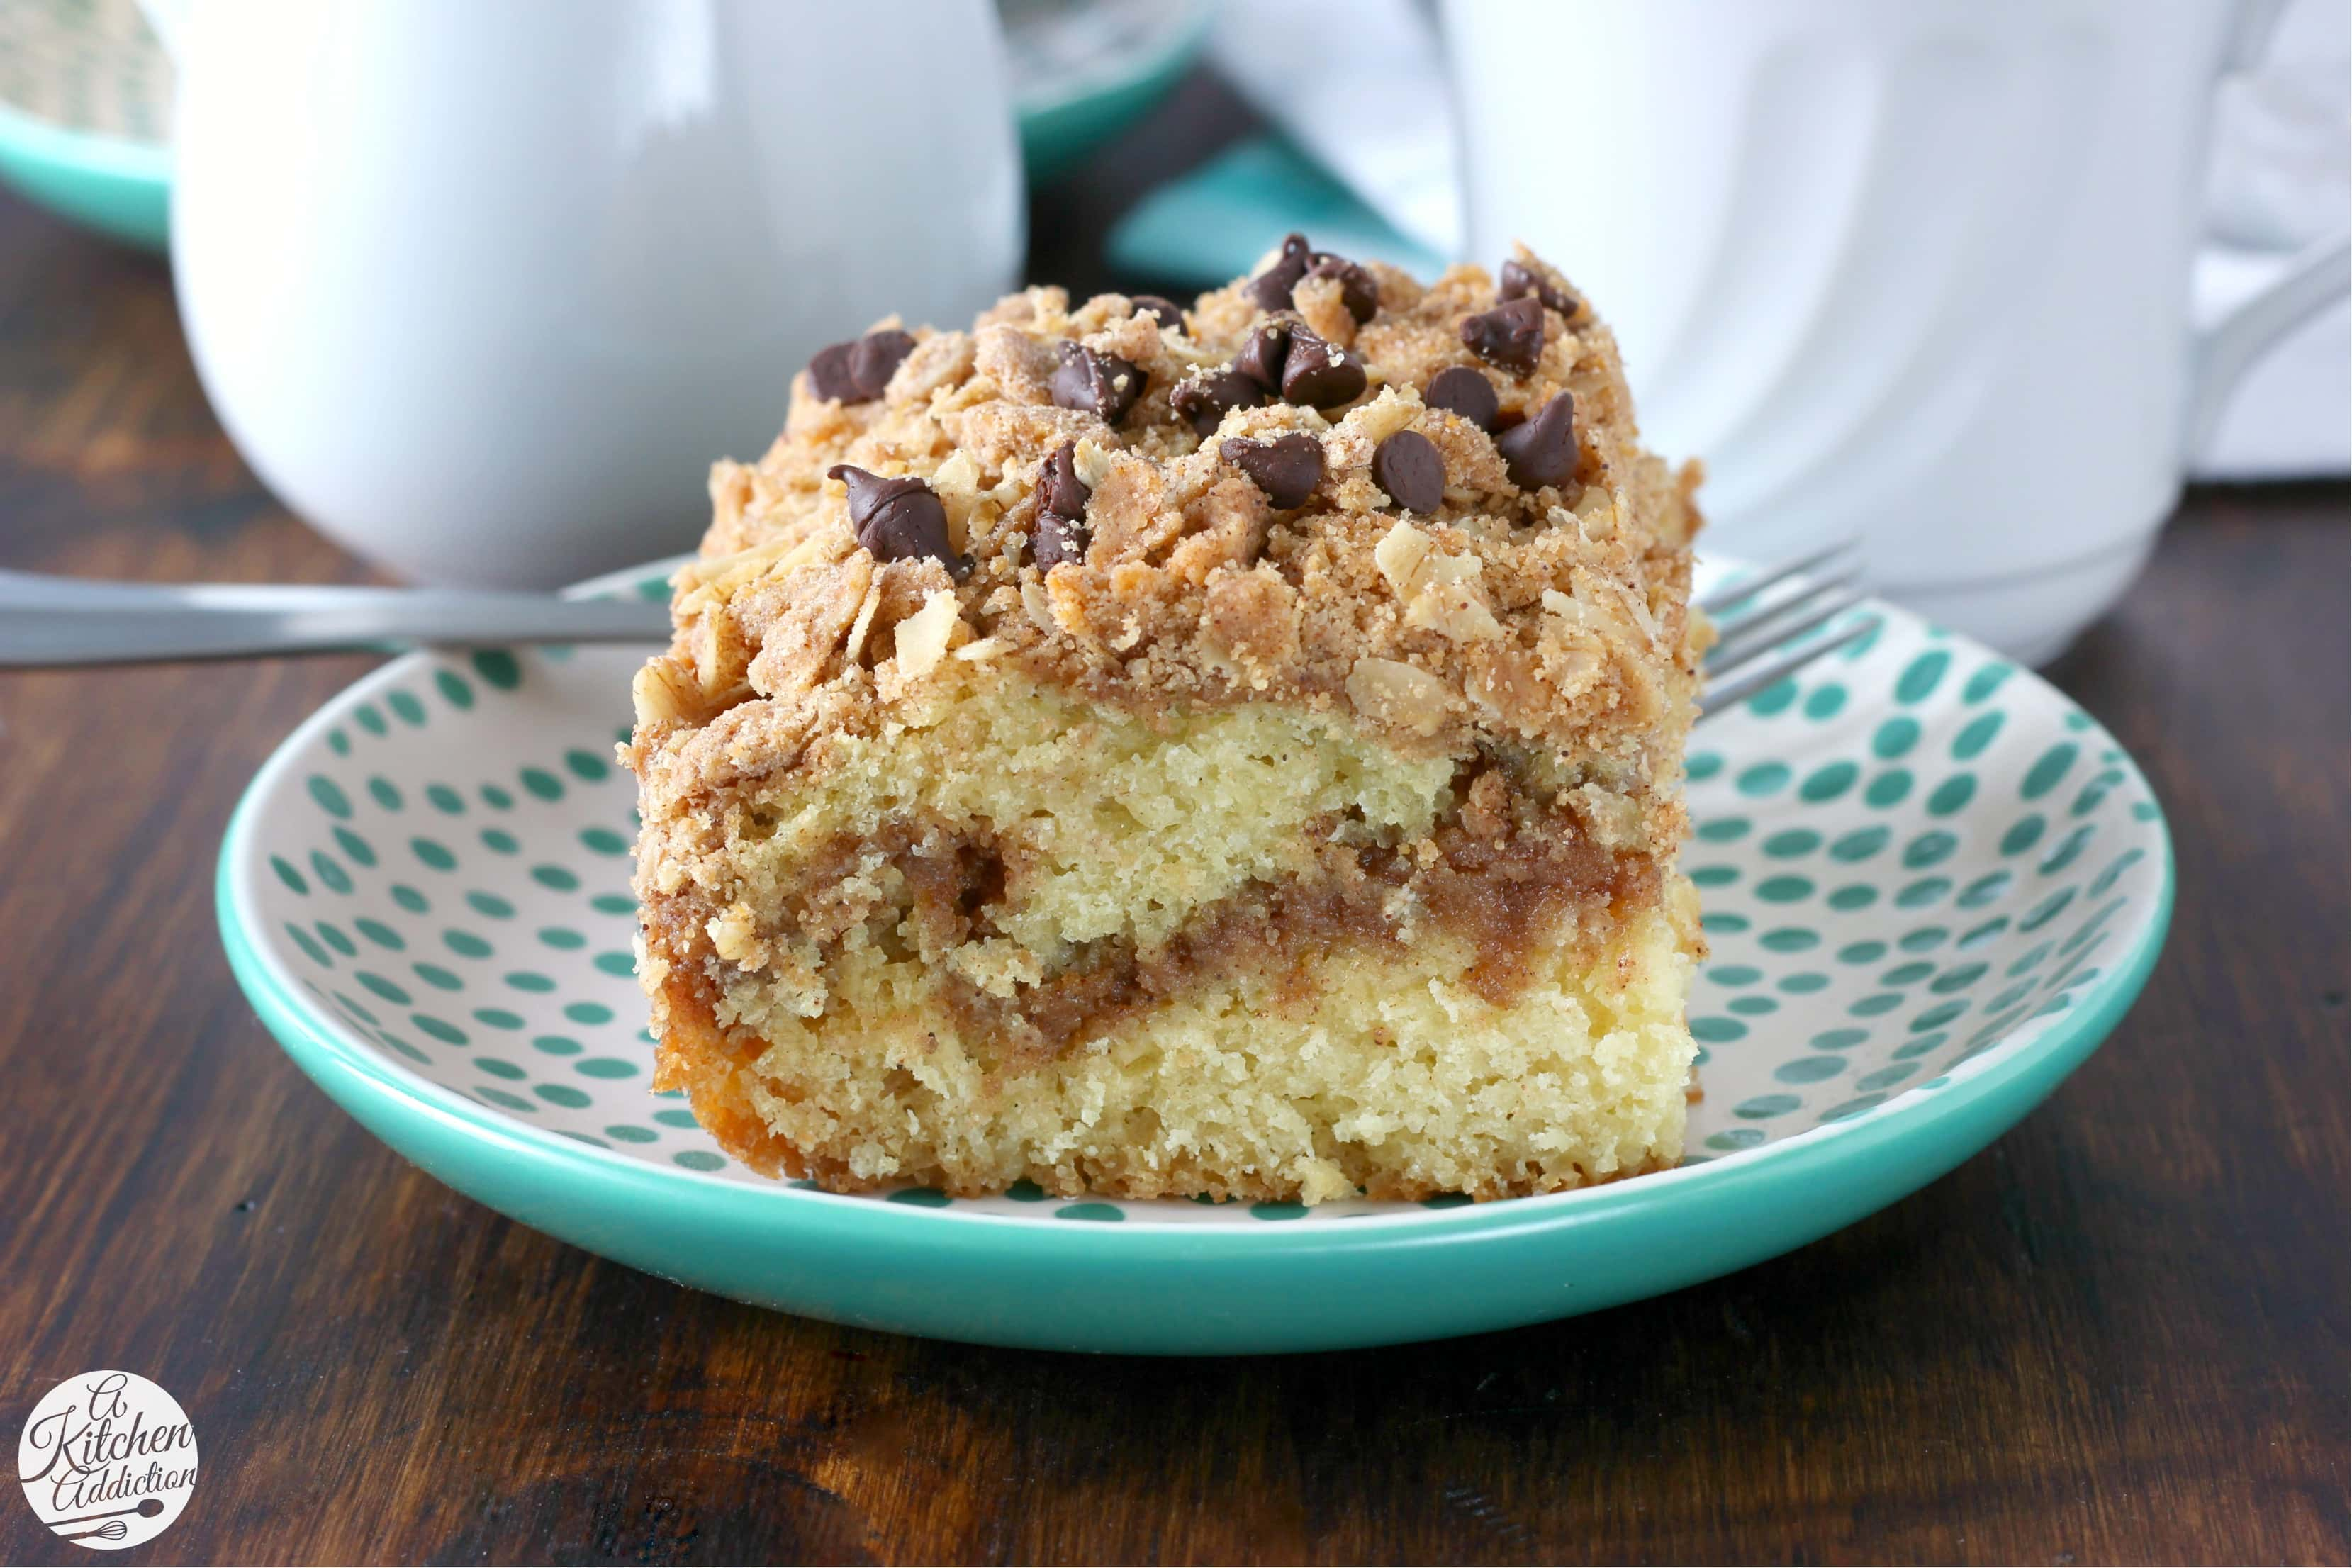 Peanut Butter Crumble Coffee Cake Recipe from A Kitchen Addiction